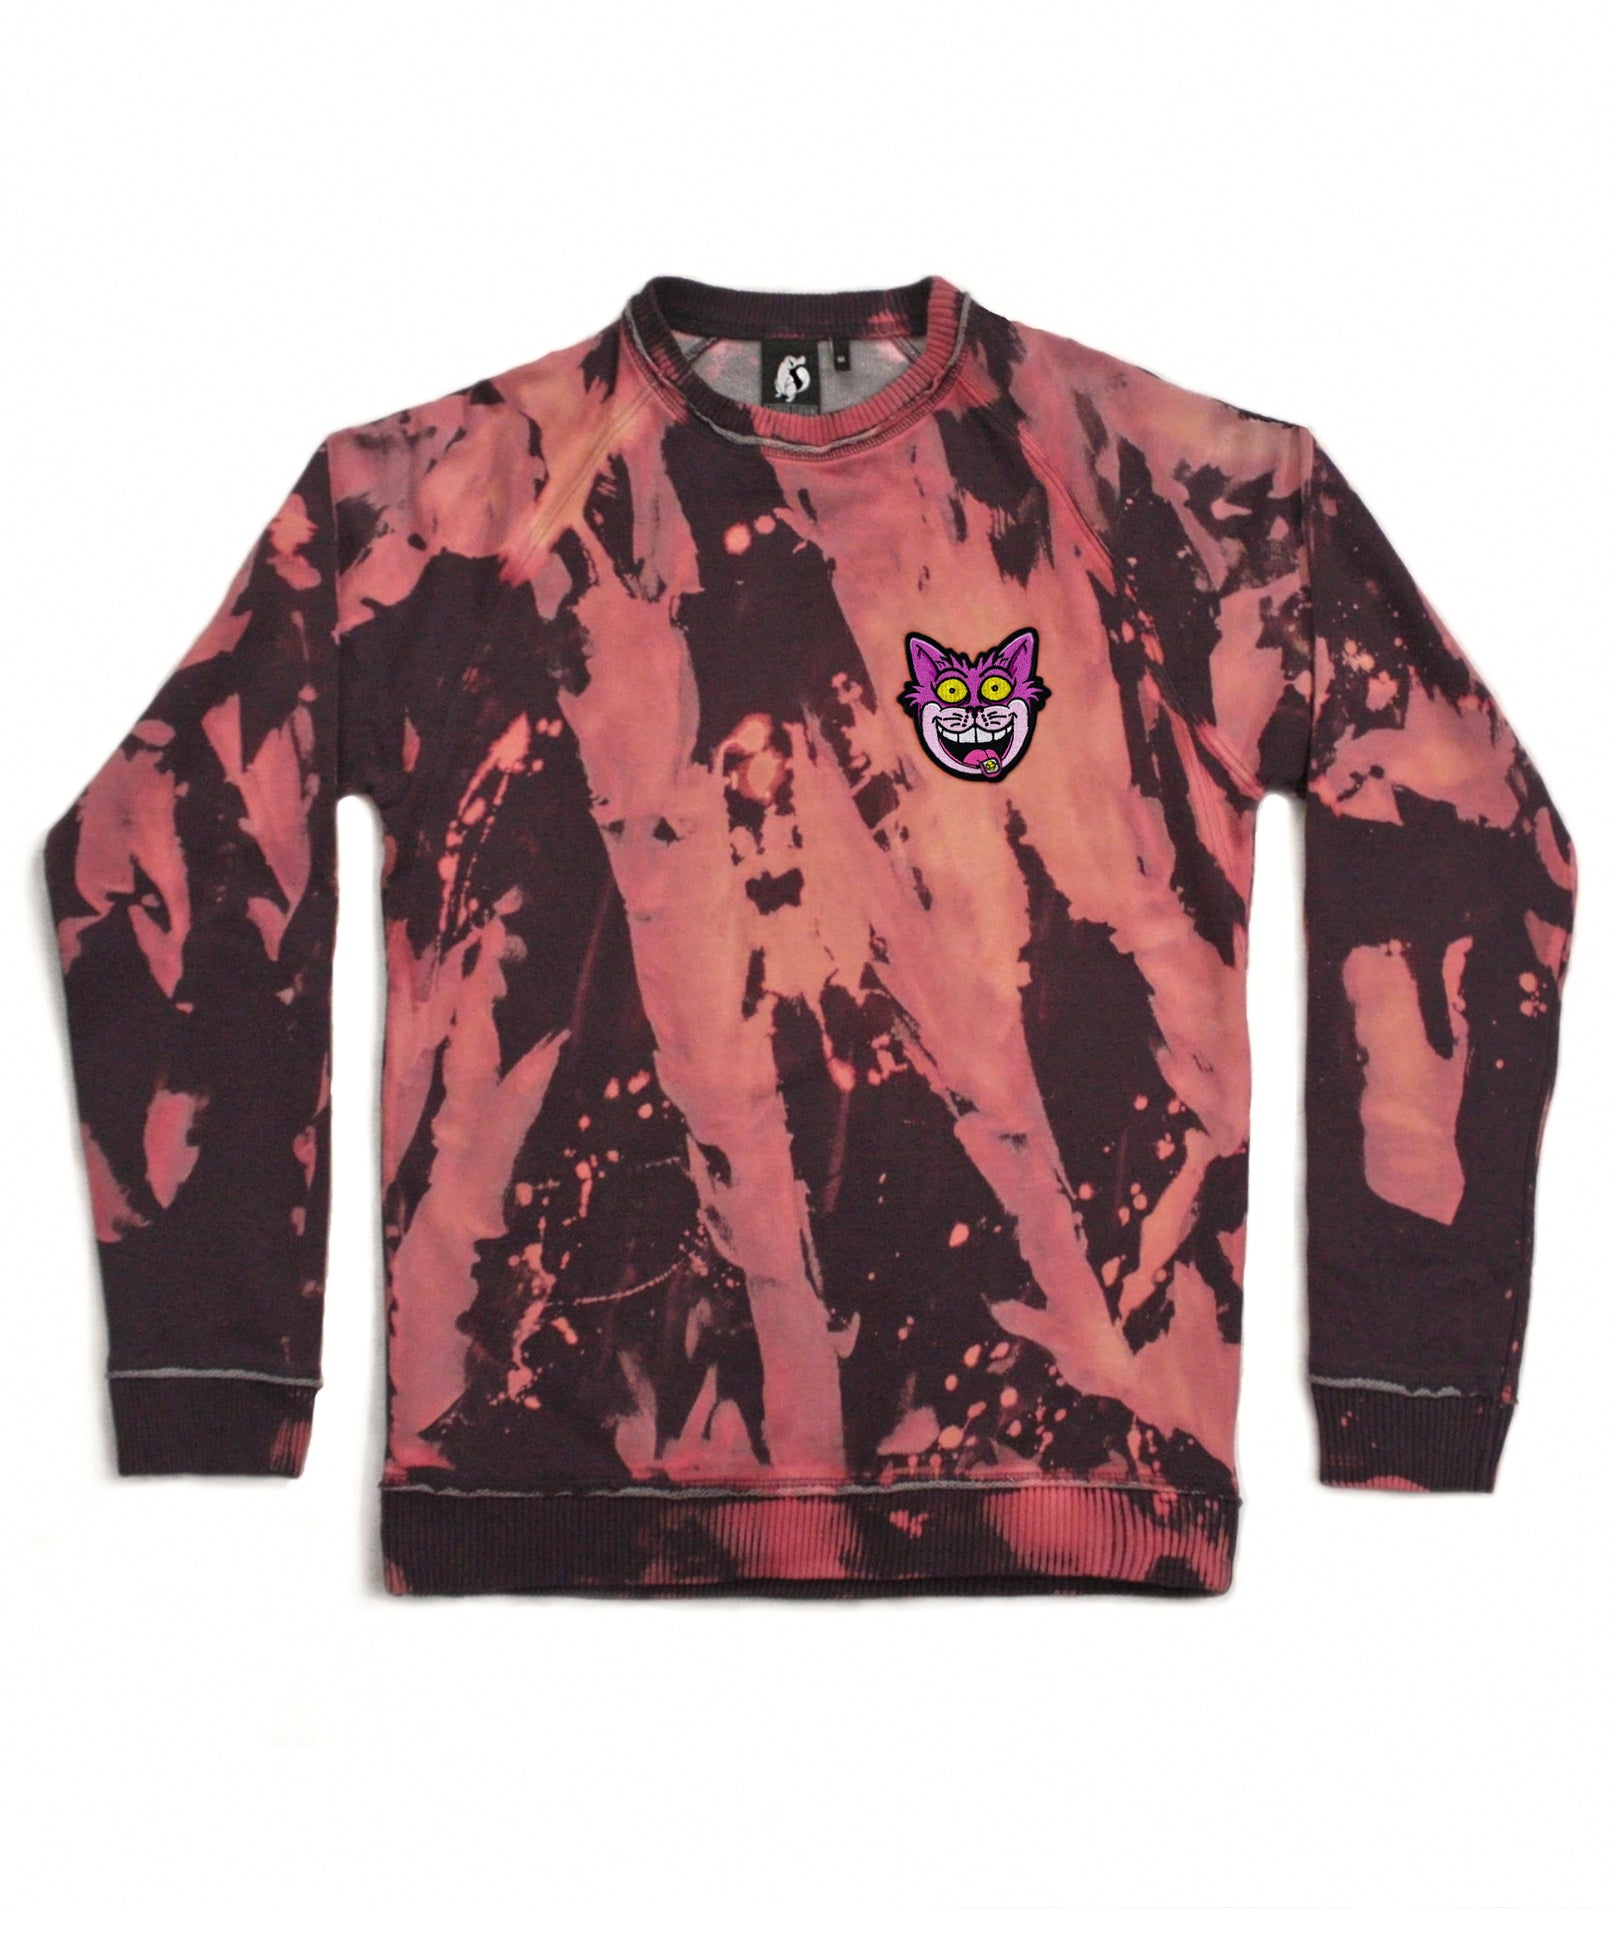 acid-wash-cheshire-cat-sweatshirt-jumper Platypus UK Streetwear